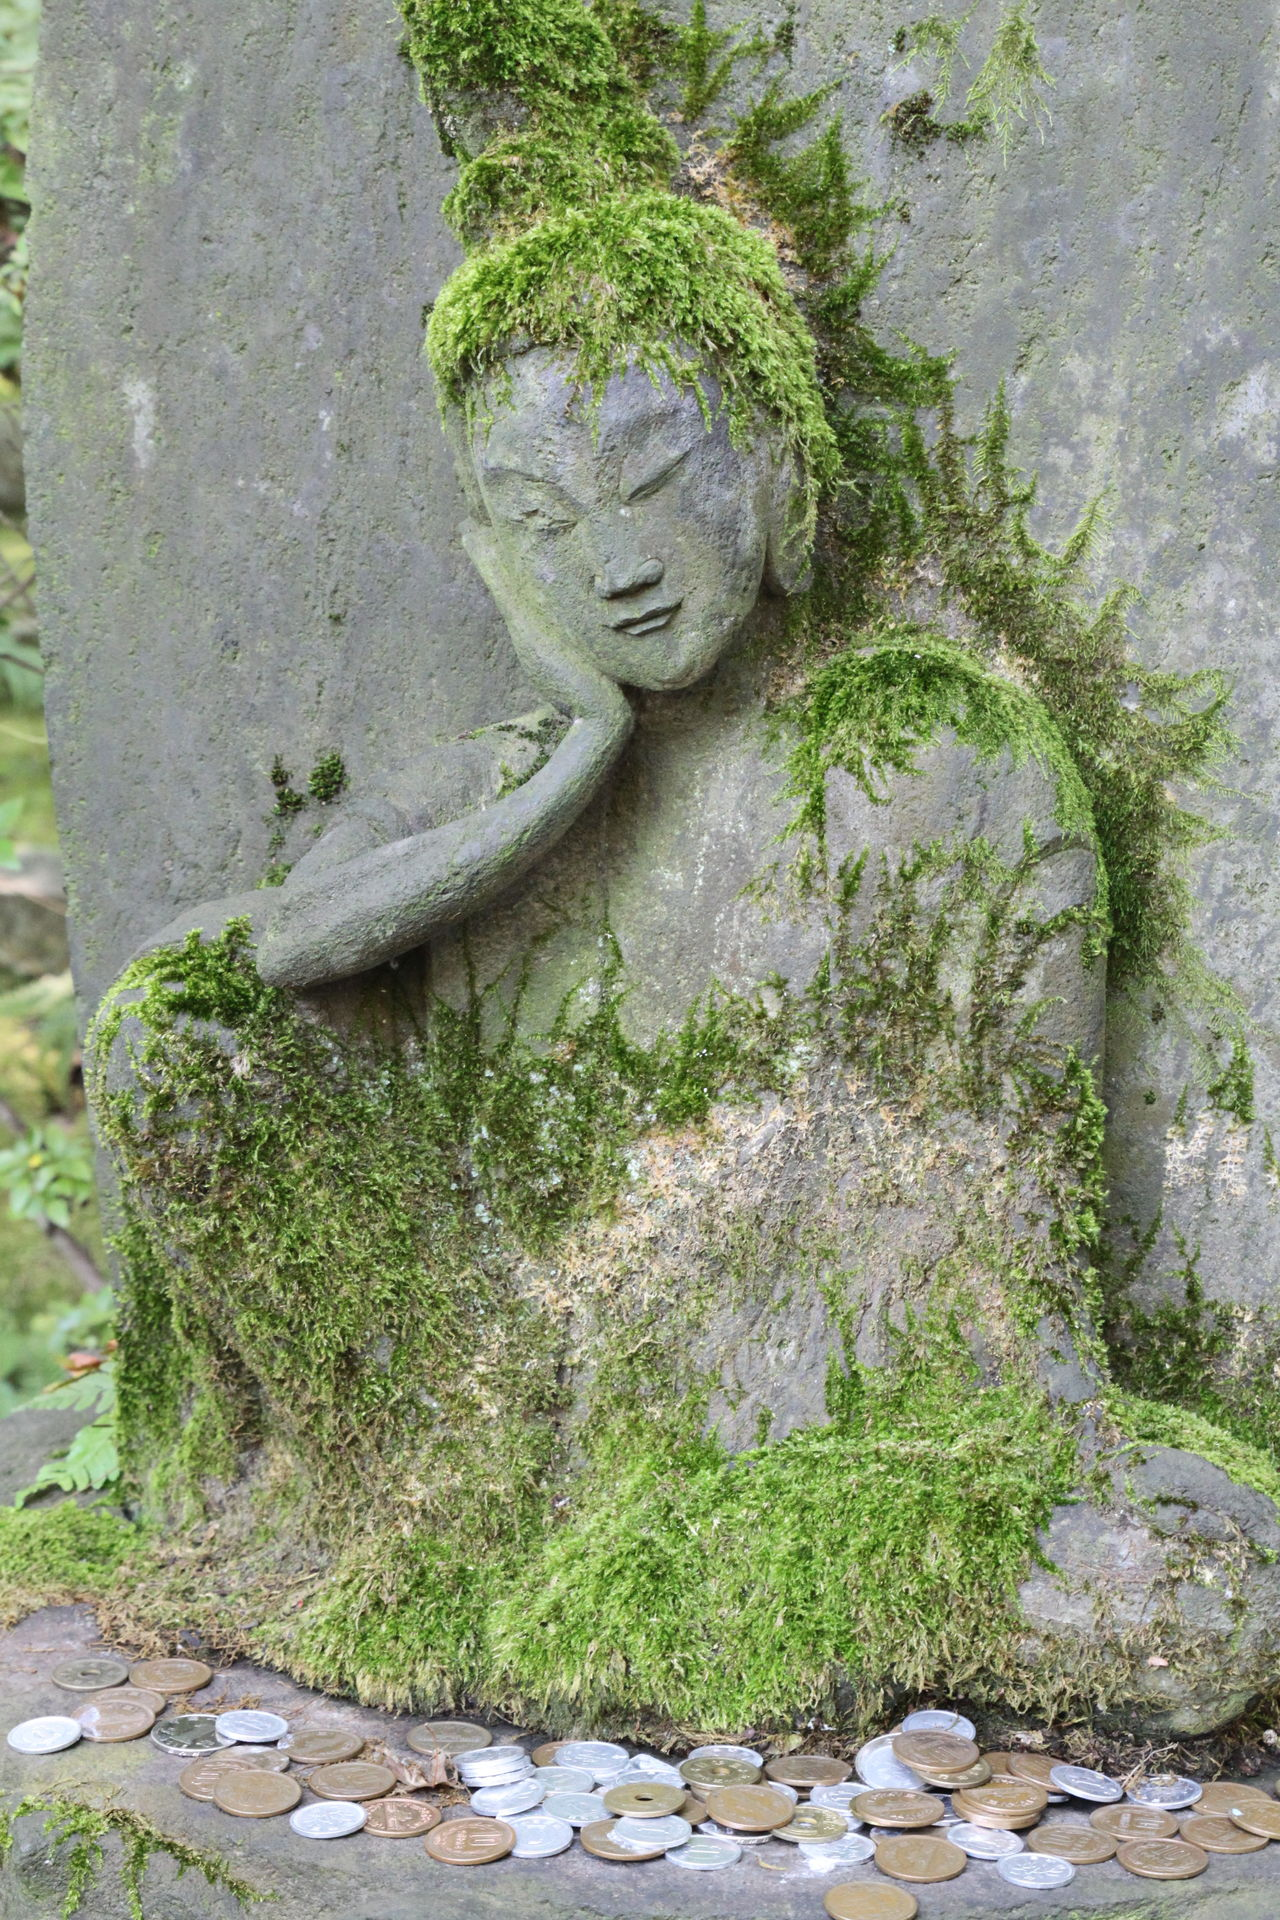 Making wishes Boddhisattva Buddha Close-up Good Luck Green Japan Money Moss Moss & Lichen Nature No People Outdoors Peace Peace And Quiet Relief Relief Sculpture Resting Sculpture Statue Stone Wish Wishes Yoga Yoga Pose Zen